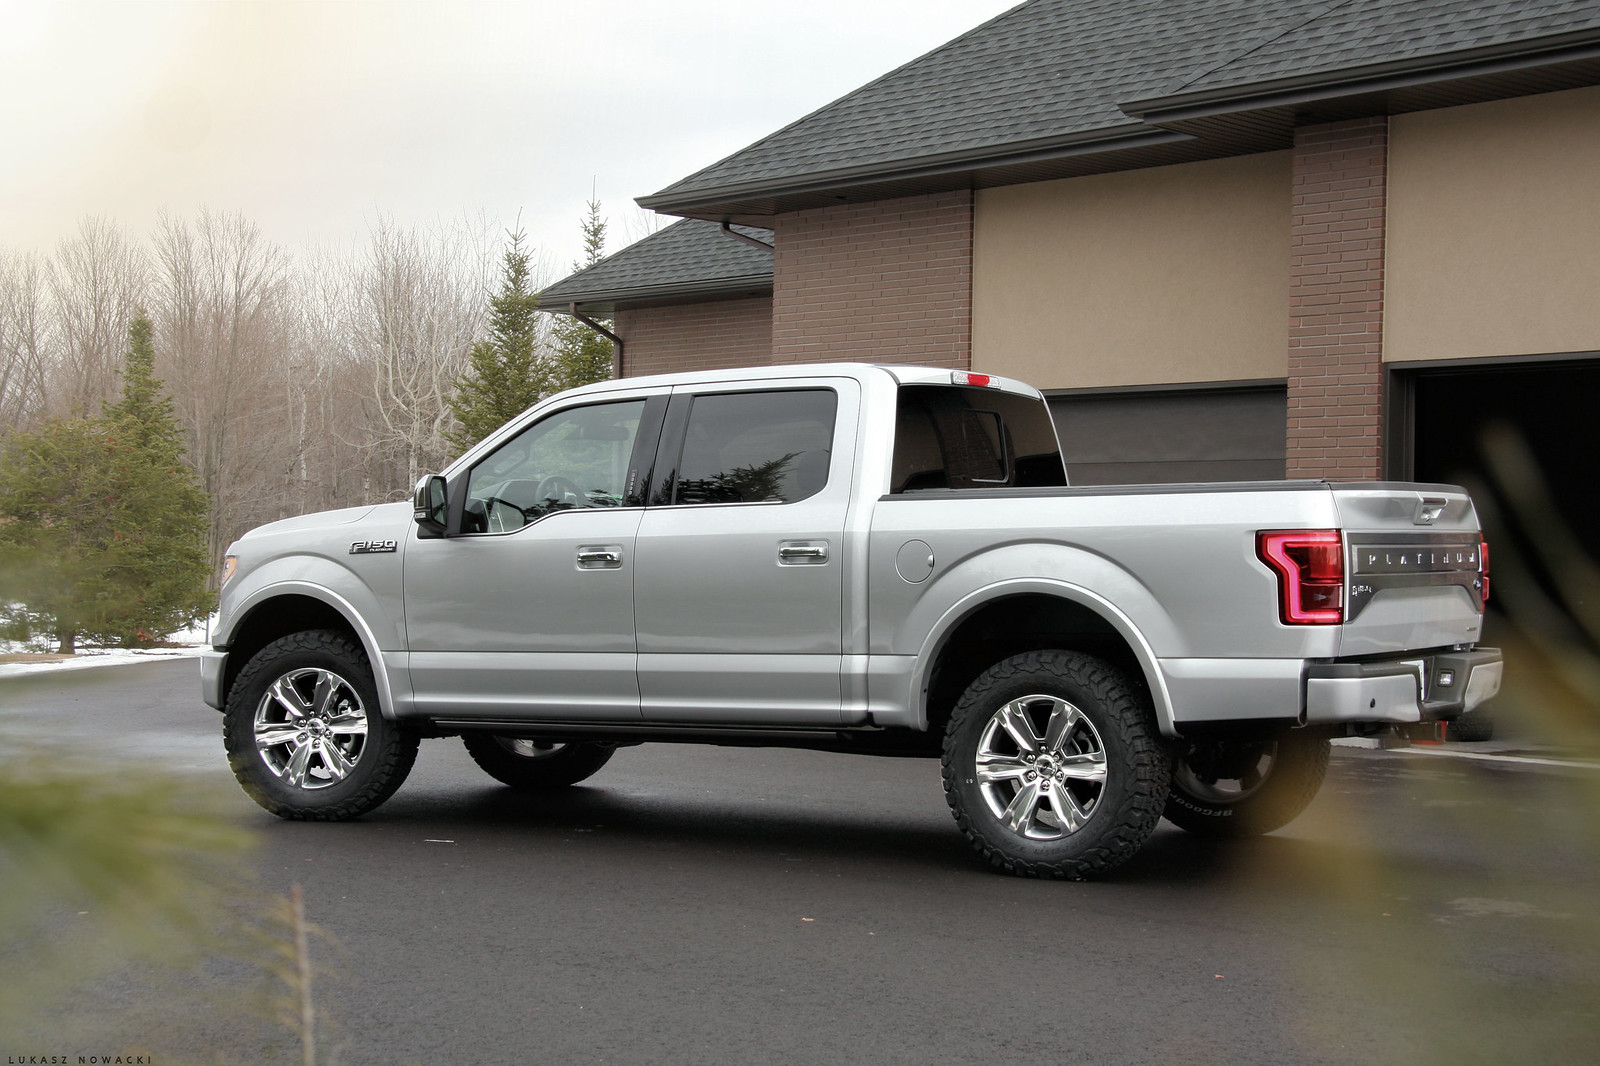 D T Fs Ford F Fx Lifted Image as well B C Bb besides Ford Bronco Ii together with Lightning Hr further C Dd Abf E Eb E Farm Trucks Old Trucks. on 86 ford f 150 lifted